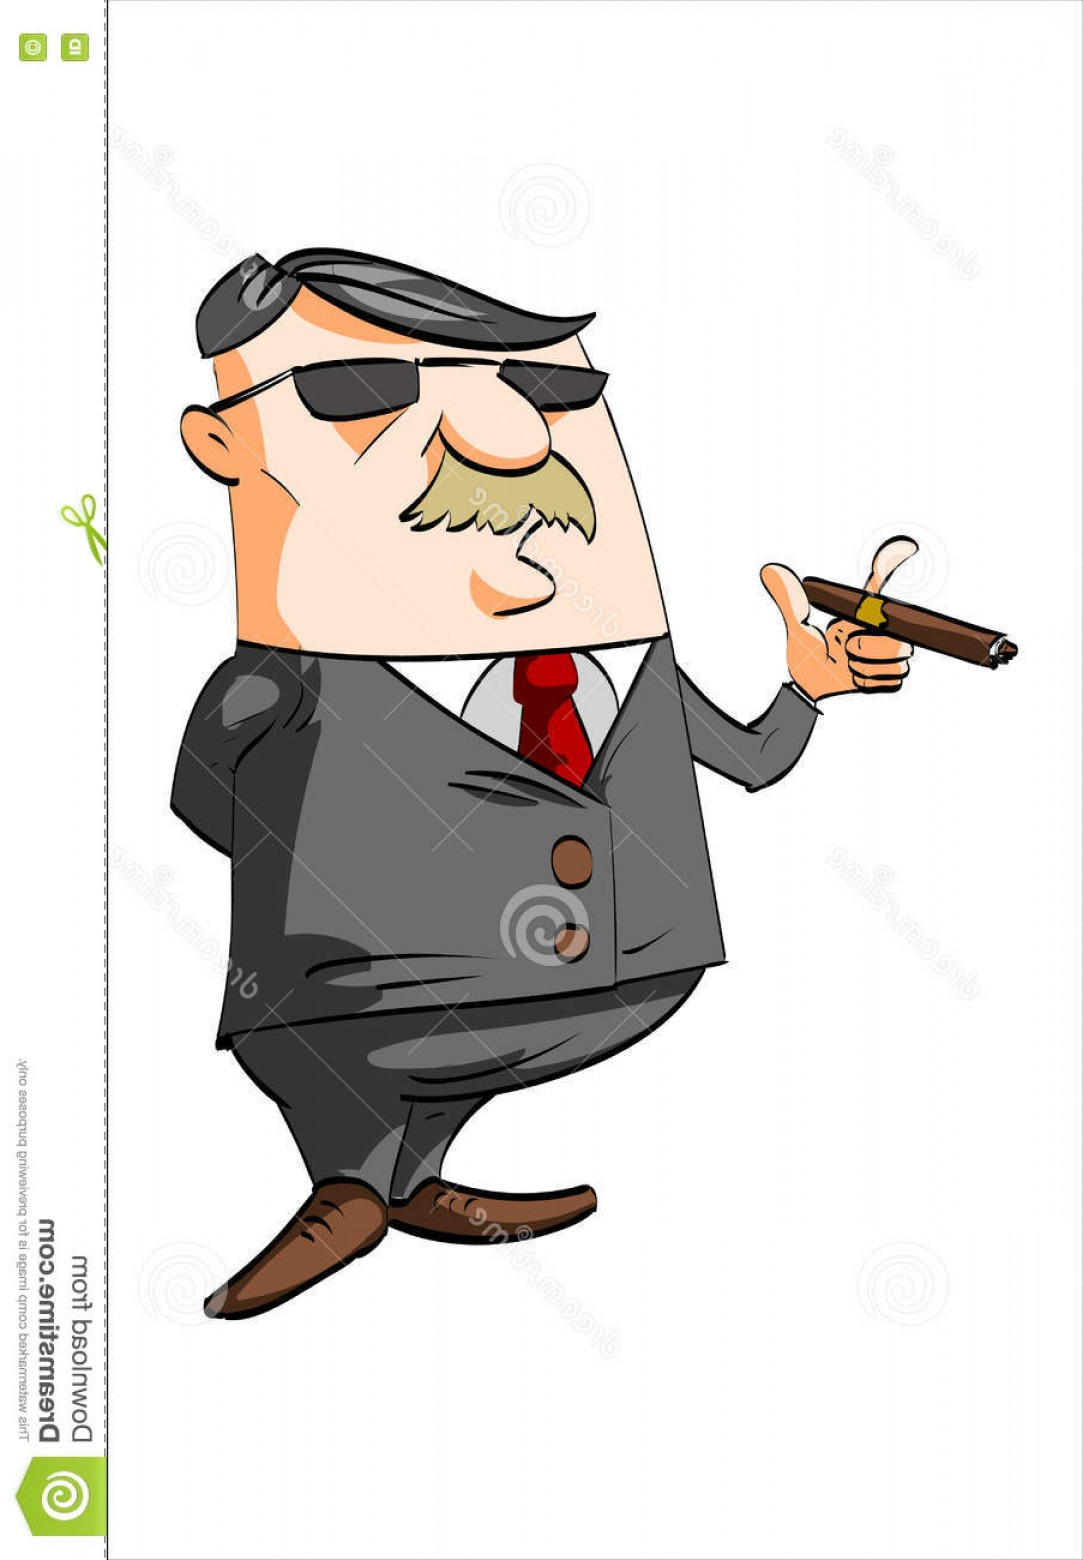 Cigar Cartoon Vector: Stock Illustration Cartoon Businessman Smoking Cigar Vector Illustration Mustache Wearing Black Suit Red Tie Sunglasses Image